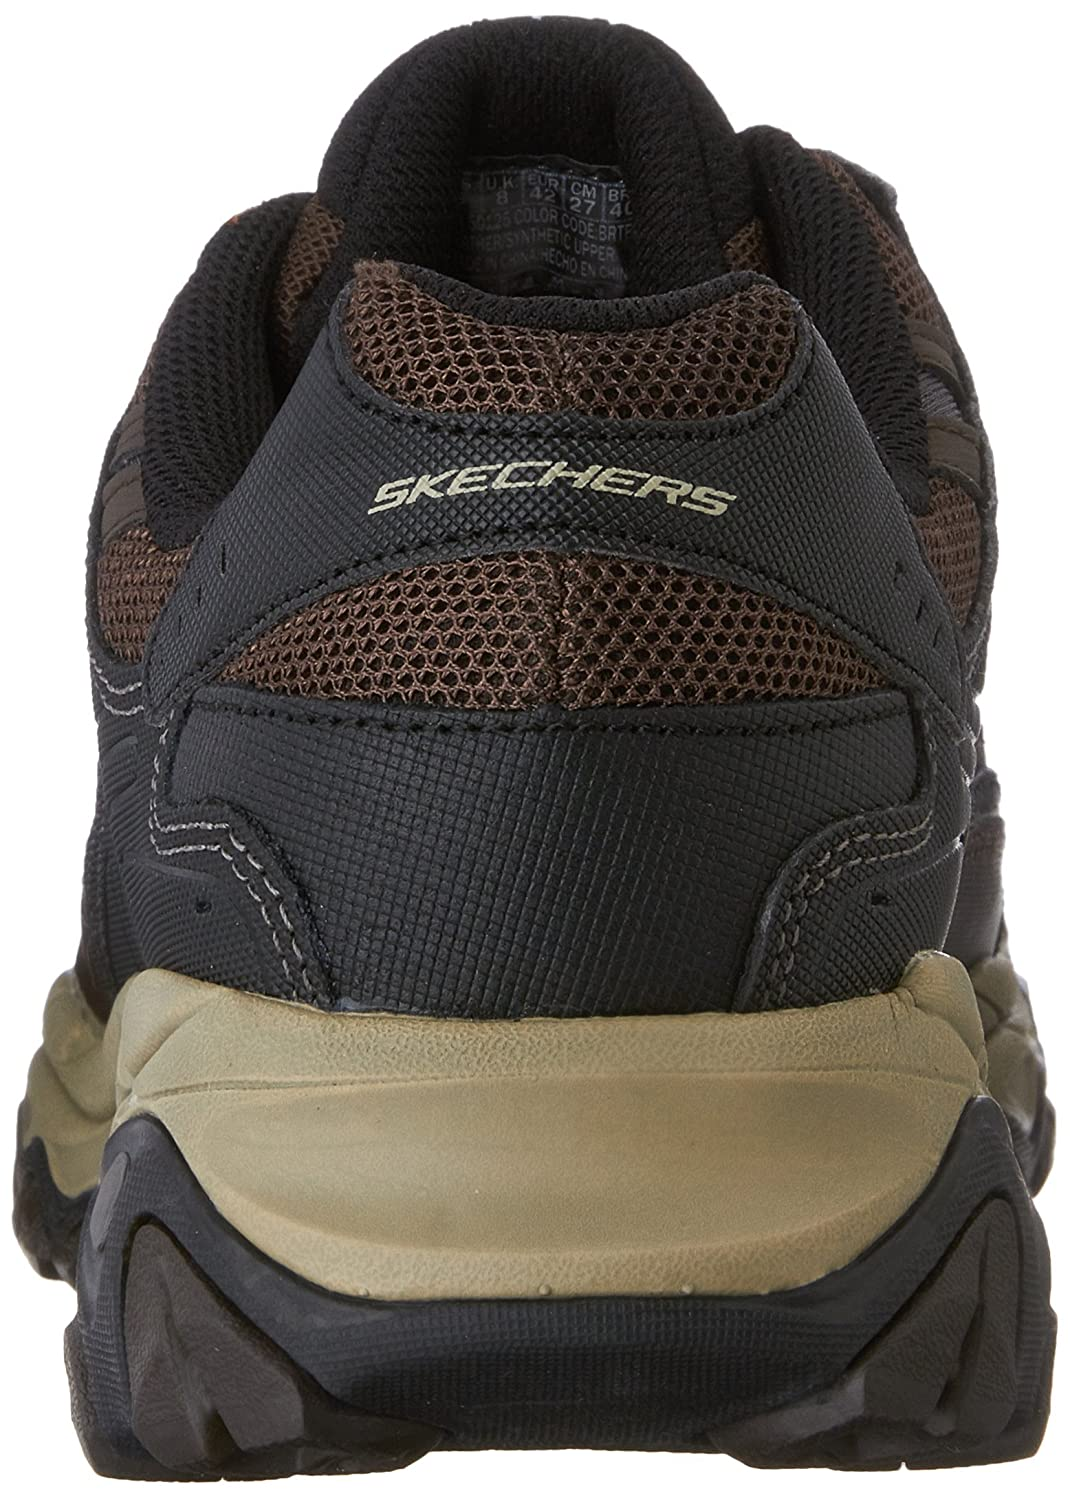 Skechers-Afterburn-Memory-Foam-M-Fit-Men-039-s-Sport-After-Burn-Sneakers-Shoes thumbnail 28